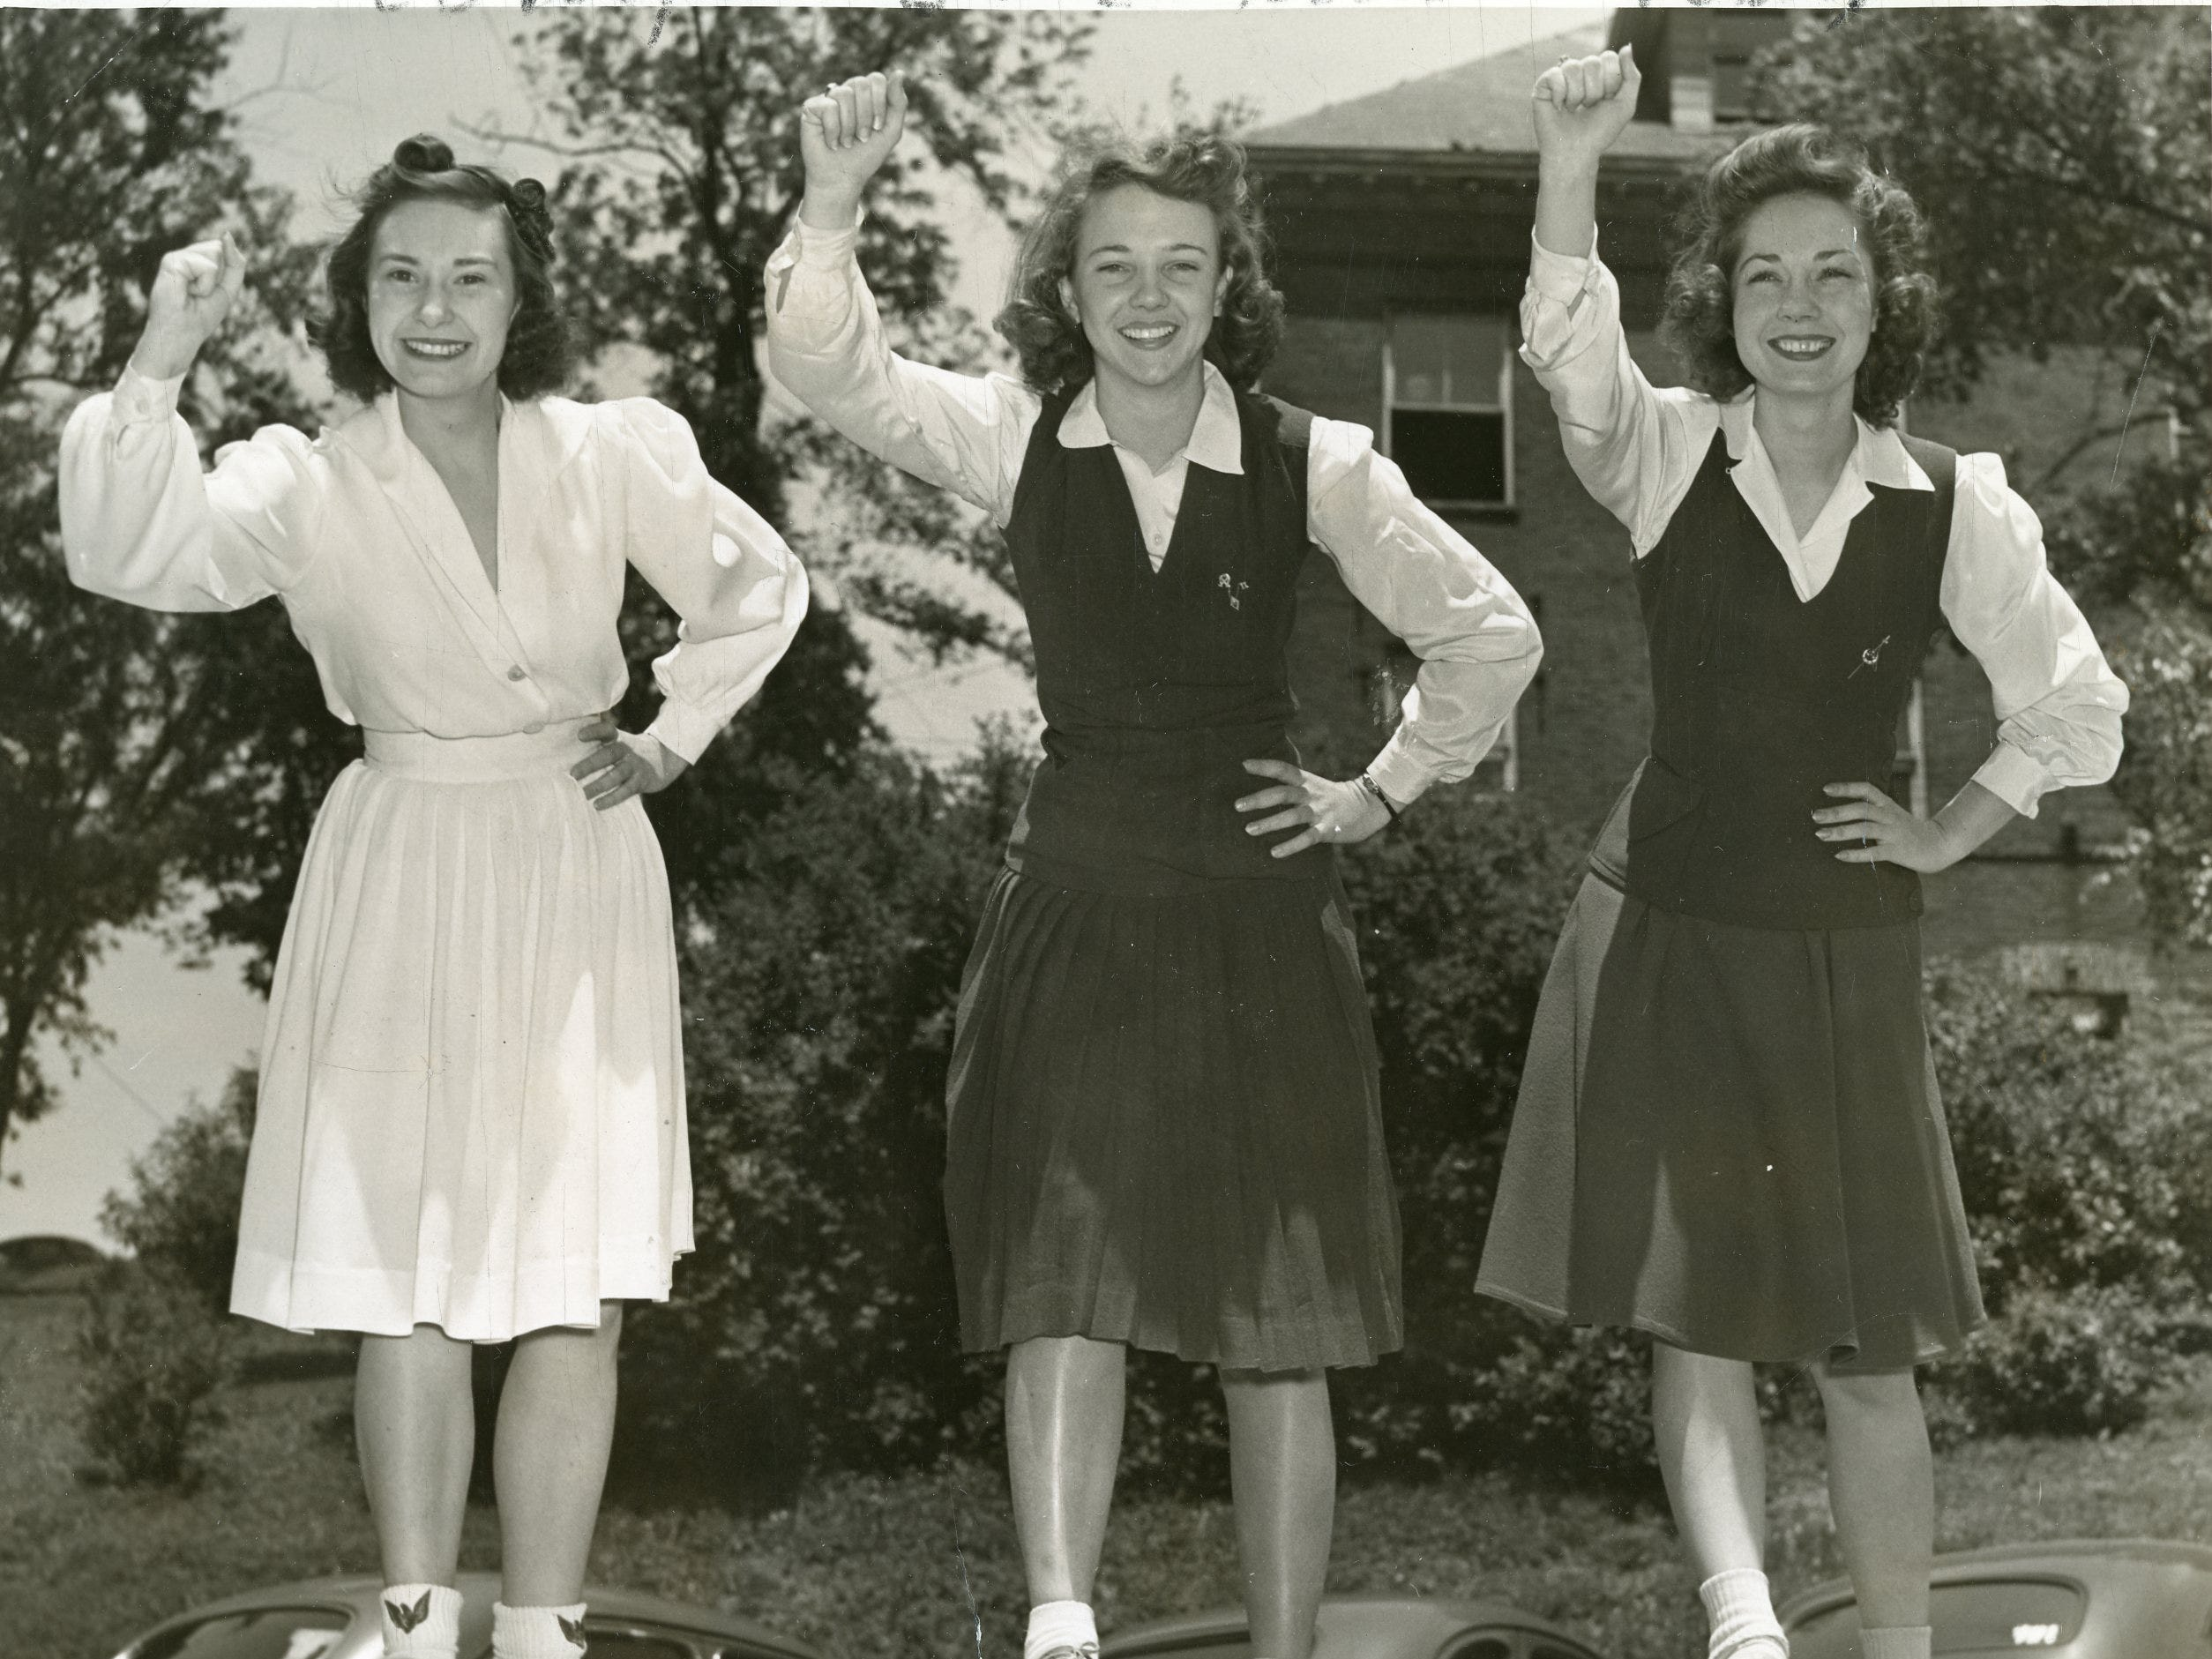 Peggy Roberts, Helen Childs and Margaret Haynes, members of the UT cheer squad, 1941.